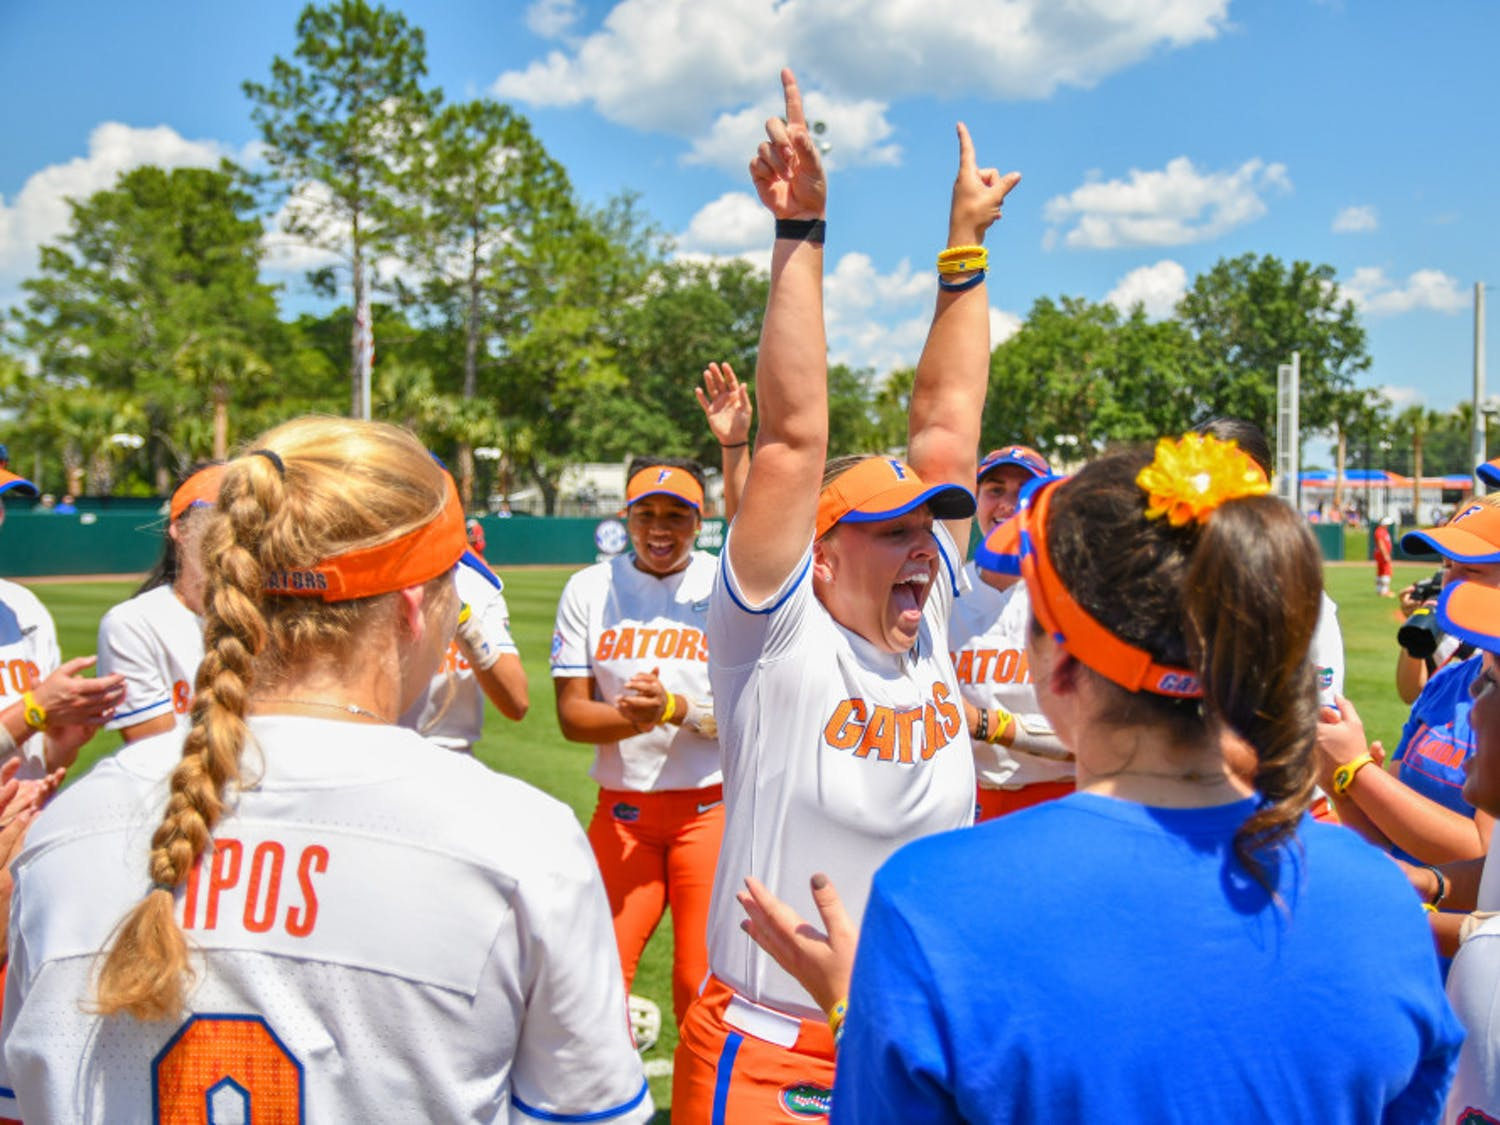 The Florida softball team advanced to the NCAA Super Regional on Sunday with a 5-0 win over Boise State.